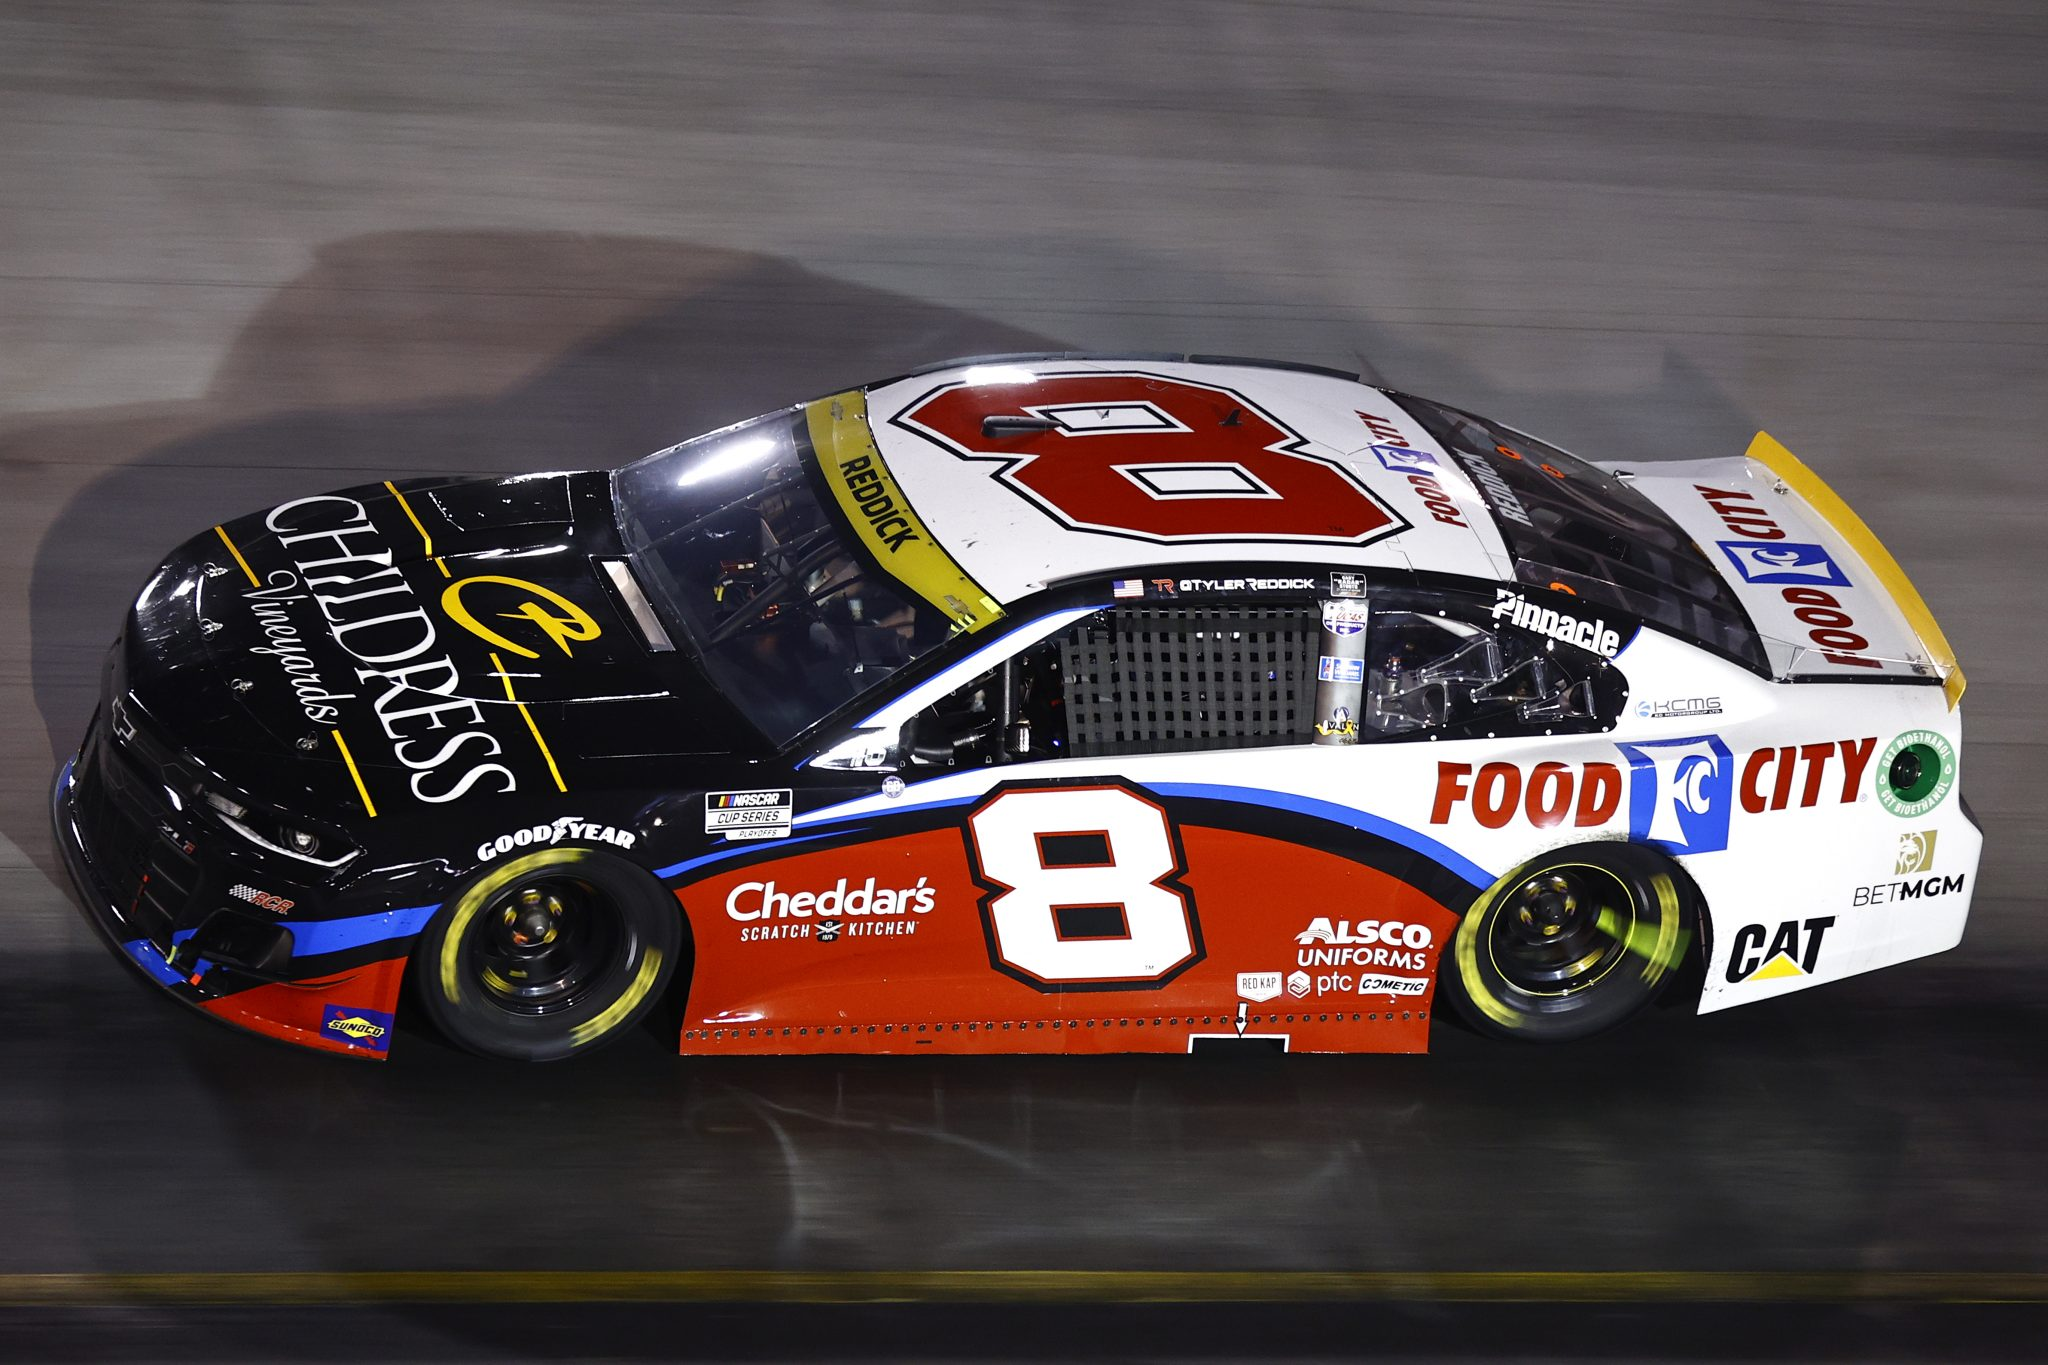 BRISTOL, TENNESSEE - SEPTEMBER 18: Tyler Reddick, driver of the #8 Food City/Childress Vineyards Chevrolet, drives during the NASCAR Cup Series Bass Pro Shops Night Race at Bristol Motor Speedway on September 18, 2021 in Bristol, Tennessee. (Photo by Jared C. Tilton/Getty Images)   Getty Images